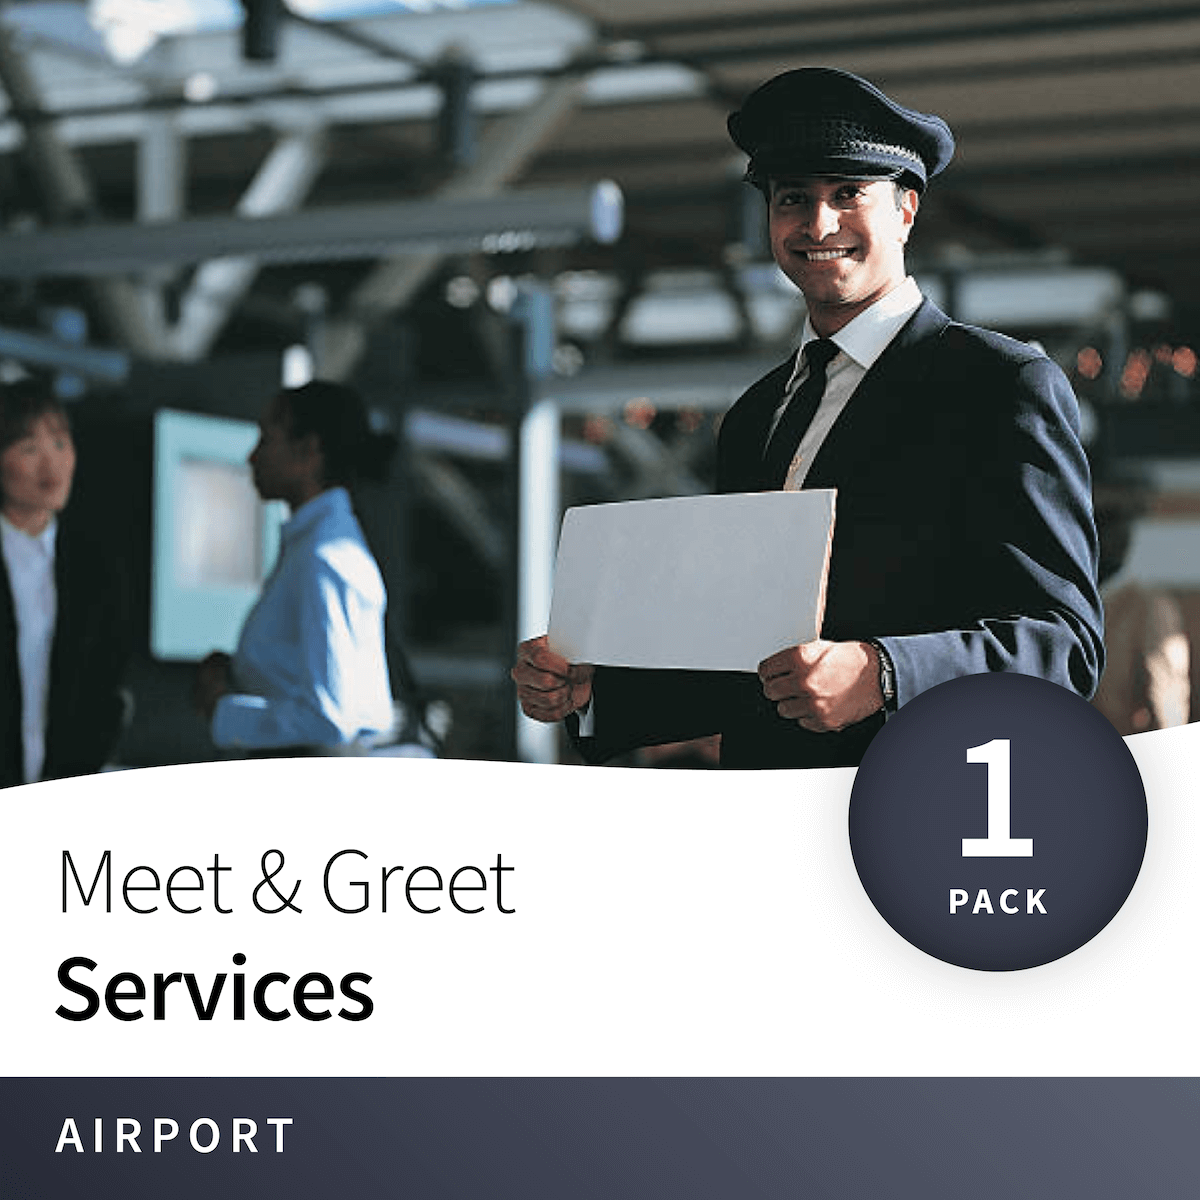 Meet & Greet Services 2